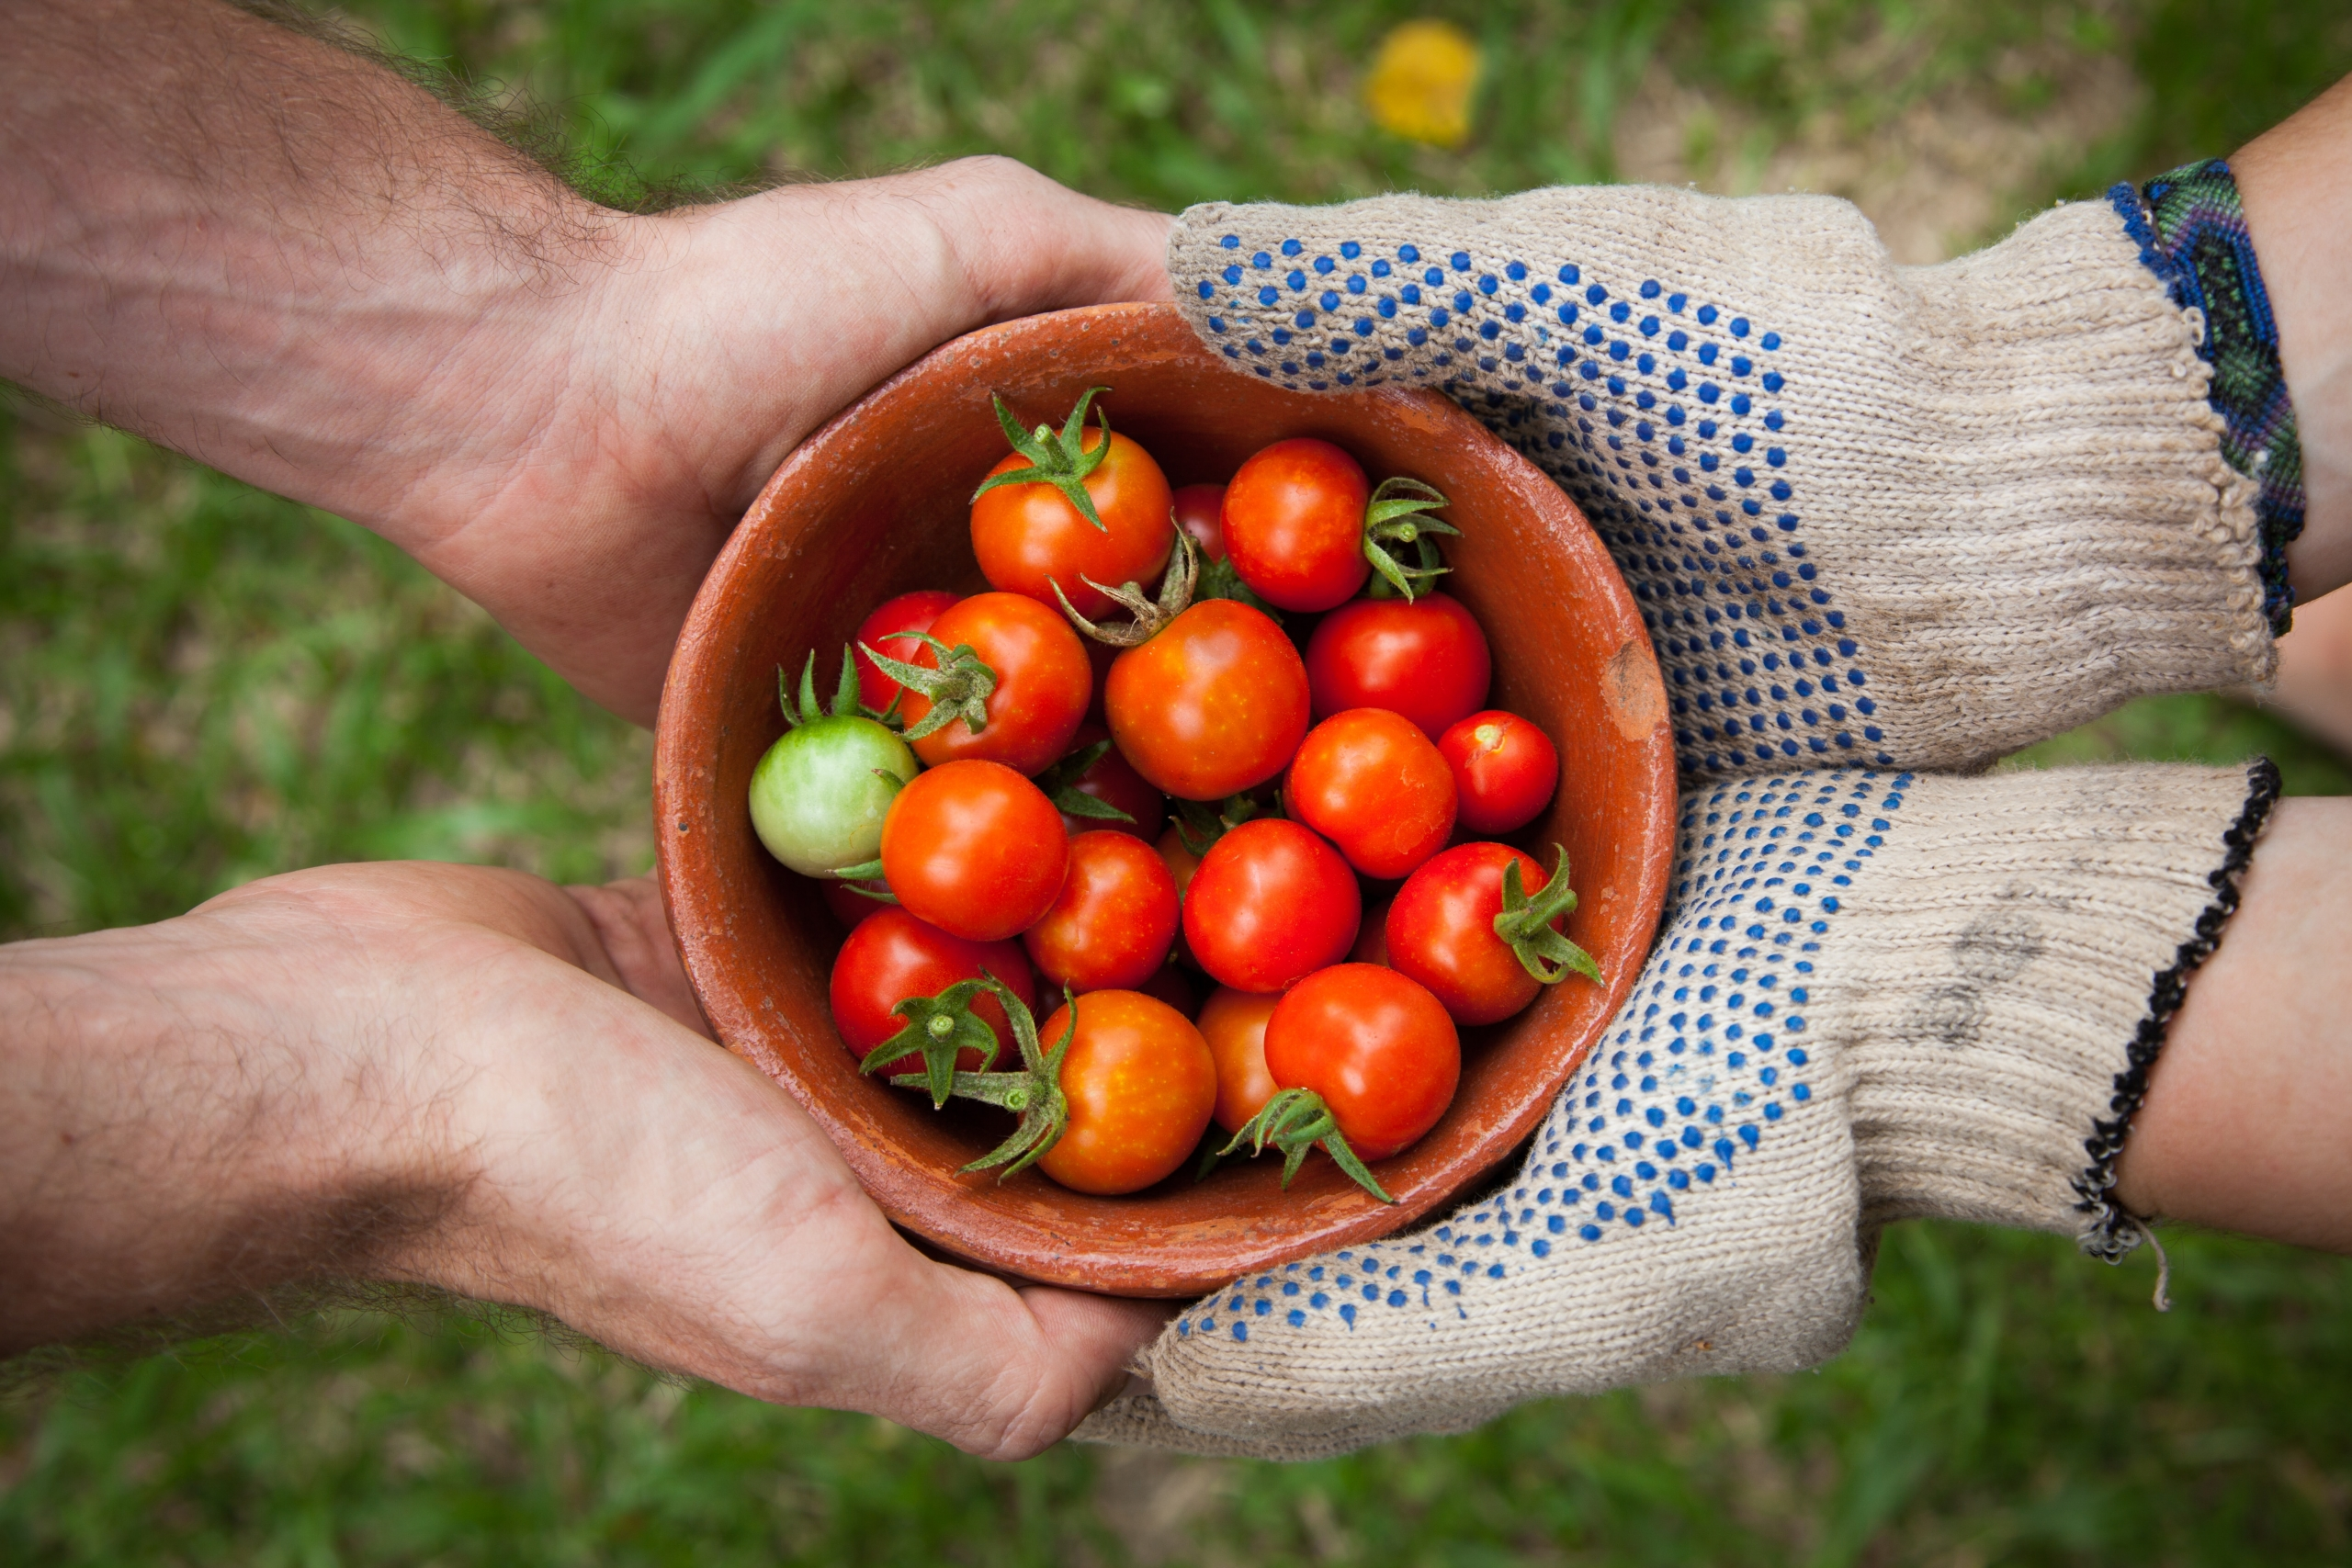 Two people holding a small bowl of tomatoes